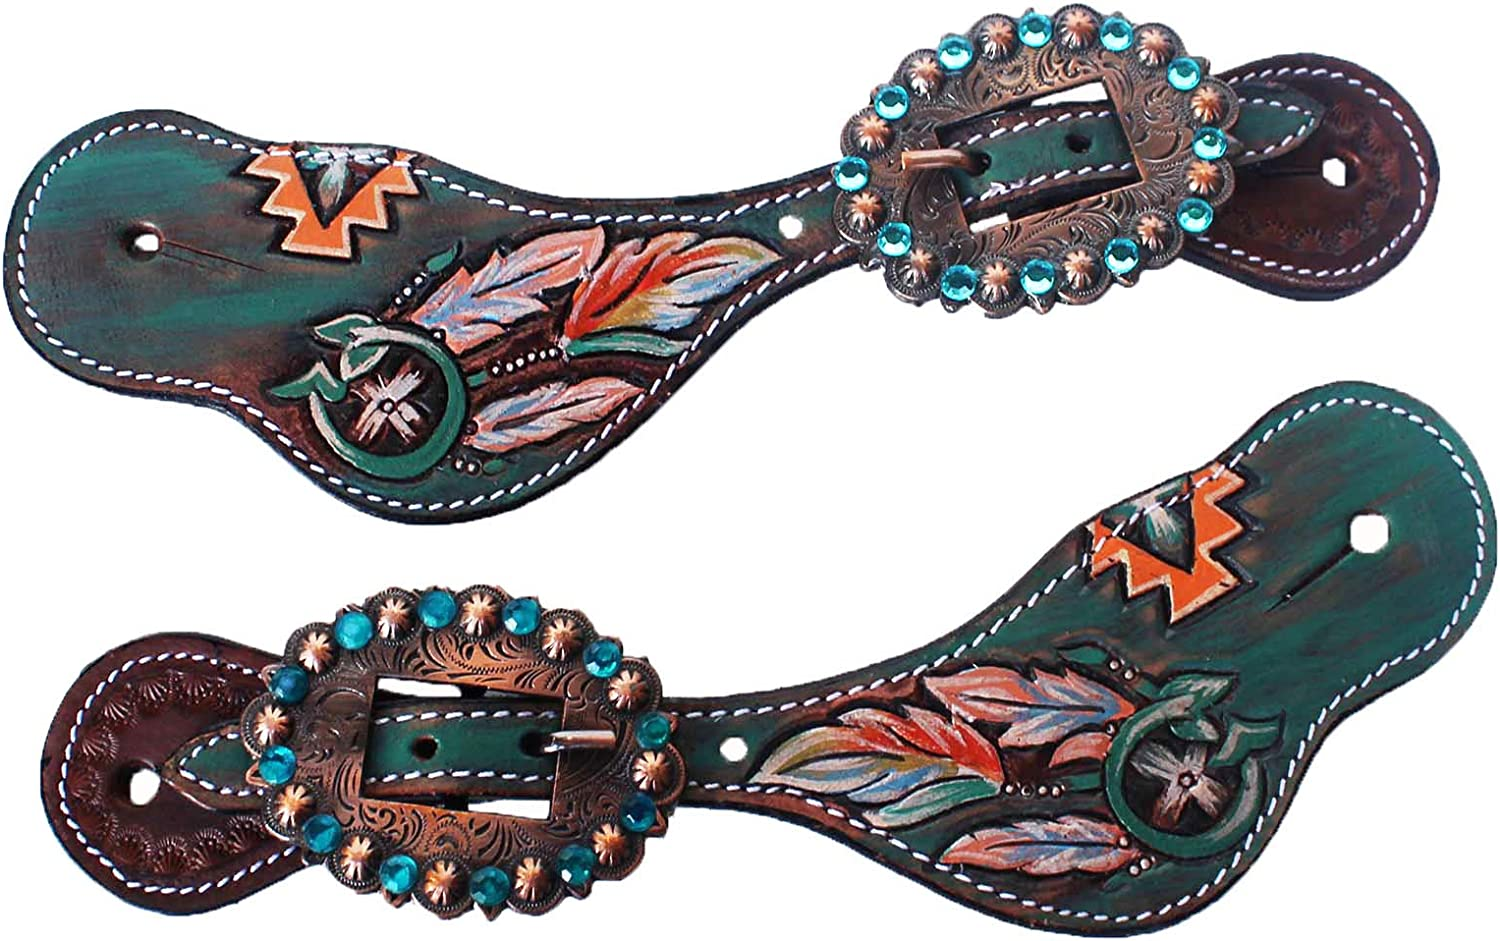 PRORIDER Western Horse Riding Cowboy Ranking integrated 1st place Spur Straps Free shipping New T Leather Boots